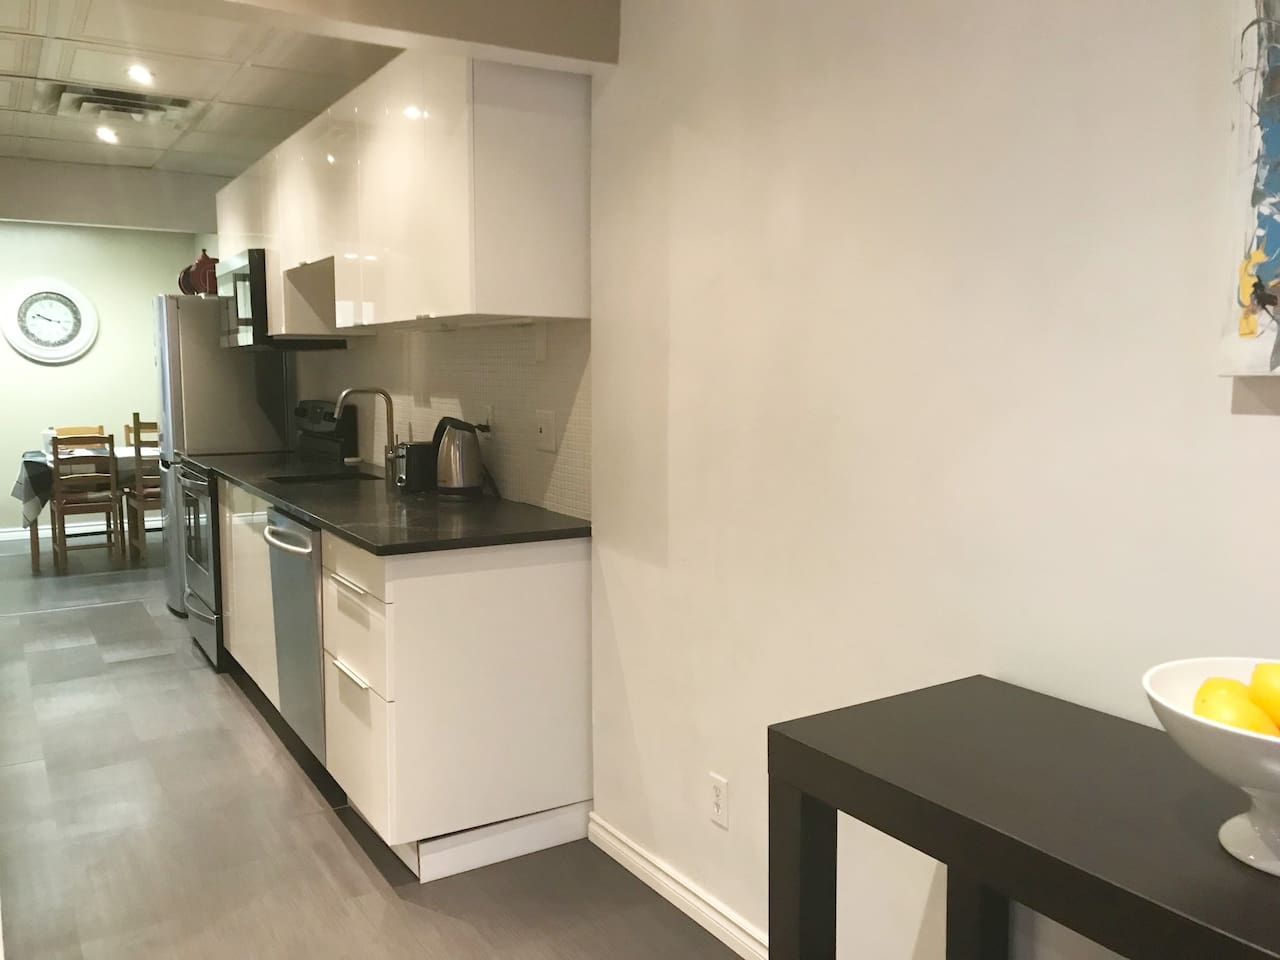 The LoLin Main Galley - Kitchen with Dishes, Fridge, Stove, Microwave Oven,  Dishwasher and Small Appliances of Kettle, Toaster & Keurig